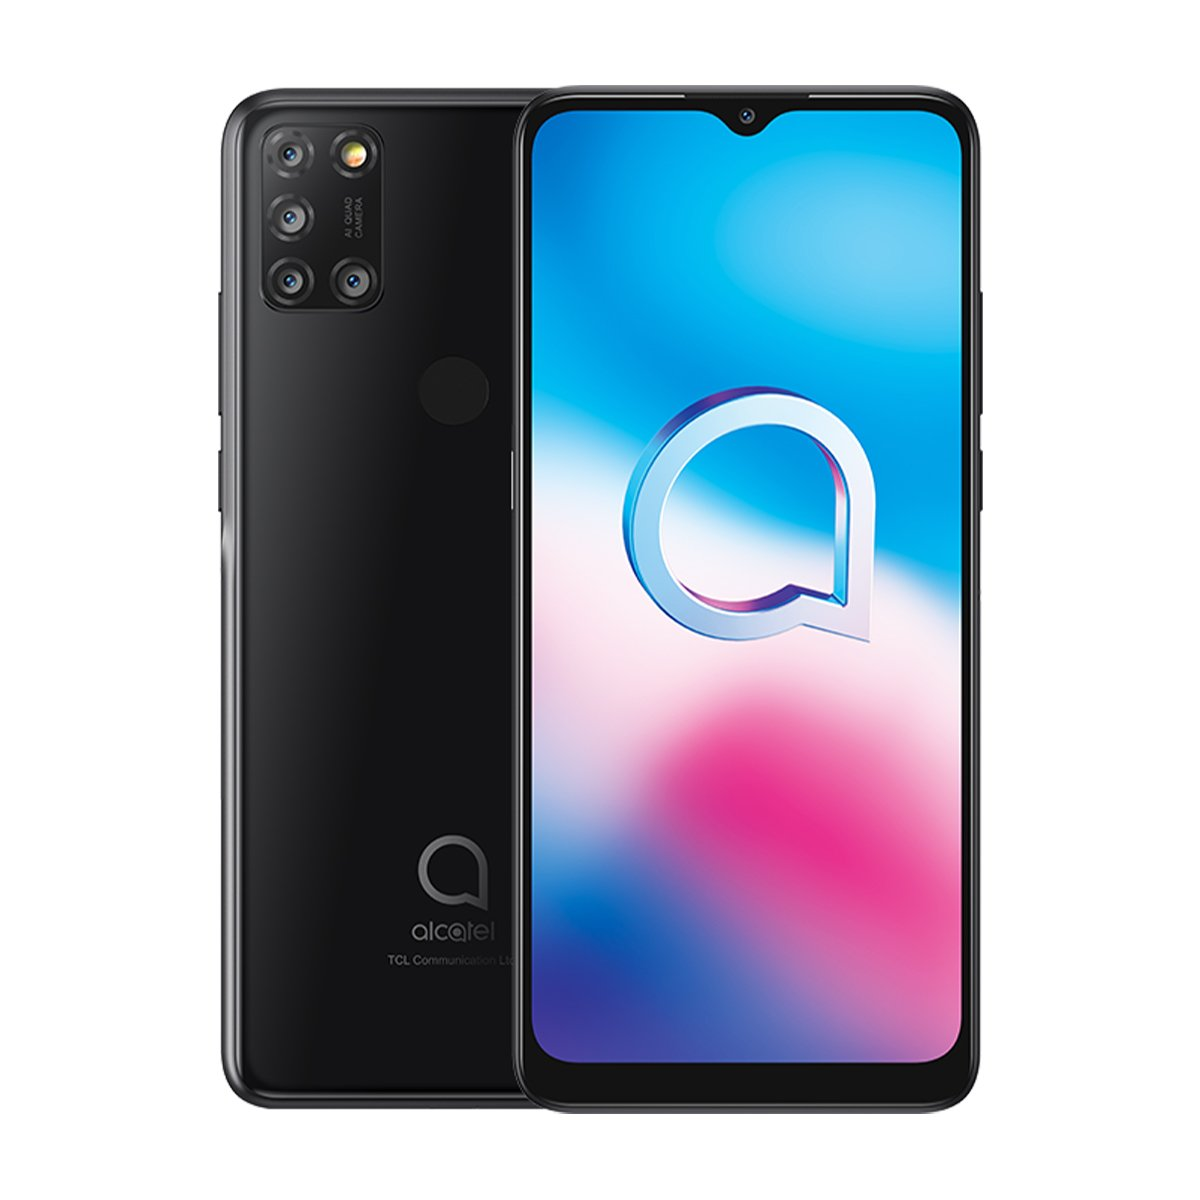 Latest Price List of Alcatel Mobile Phones in Pakistan | PriceOye